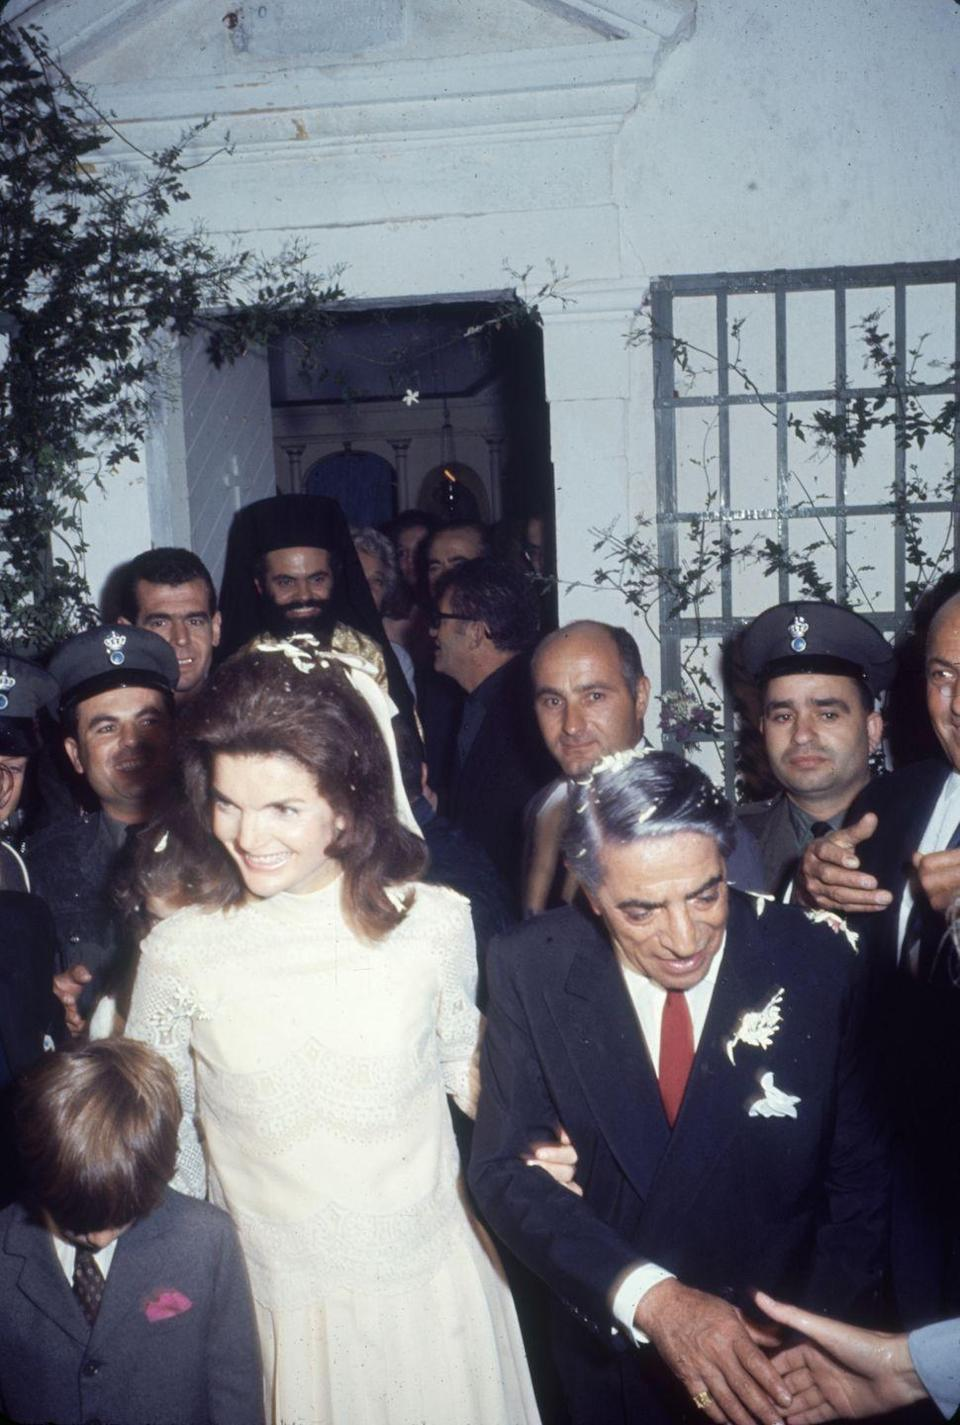 "<p>For her wedding to Greek magnate Aristotle Onassis, Jackie opted for a knee length pleated and lace <a href=""https://www.townandcountrymag.com/style/fashion-trends/g9947418/10-brands-jackie-kennedy-loved/?slide=9"" rel=""nofollow noopener"" target=""_blank"" data-ylk=""slk:Valentino dress"" class=""link rapid-noclick-resp"">Valentino dress</a> and a simple white hair bow. </p>"